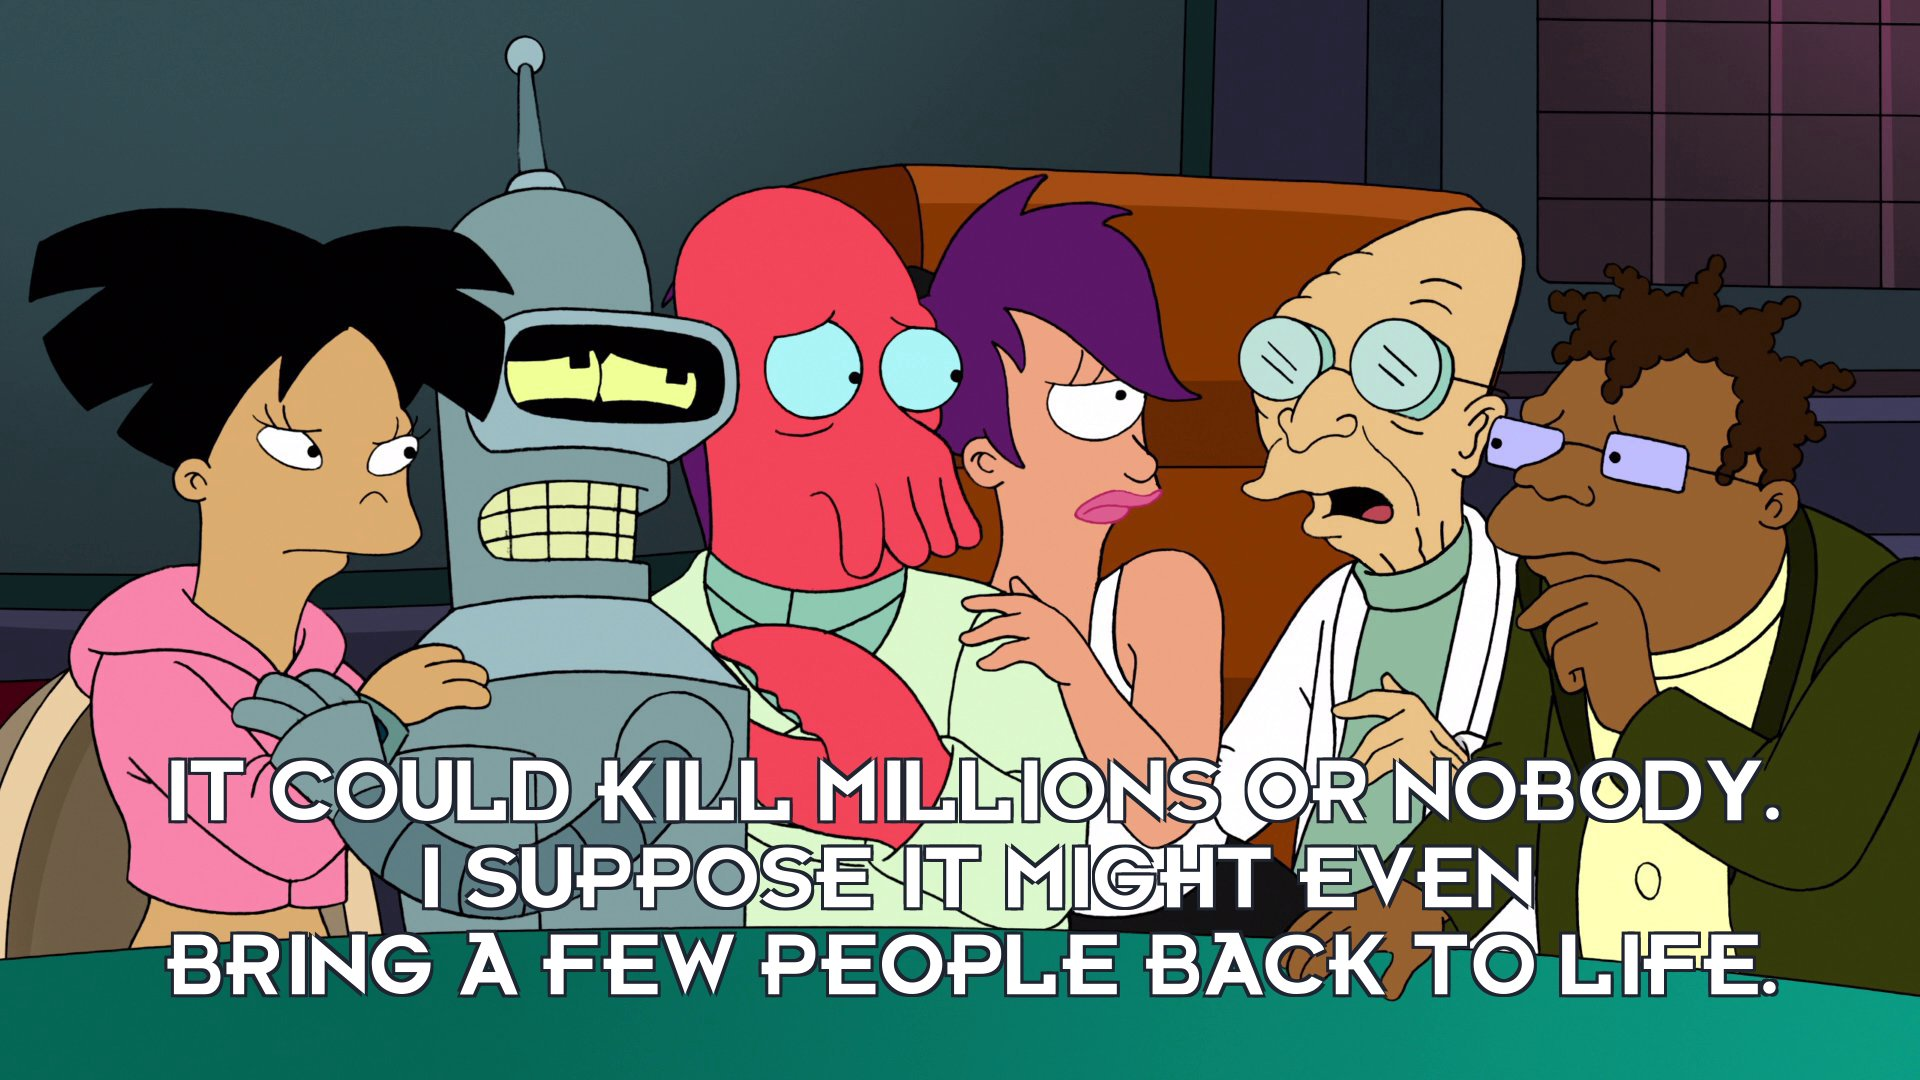 Prof Hubert J Farnsworth: It could kill millions or nobody. I suppose it might even bring a few people back to life.